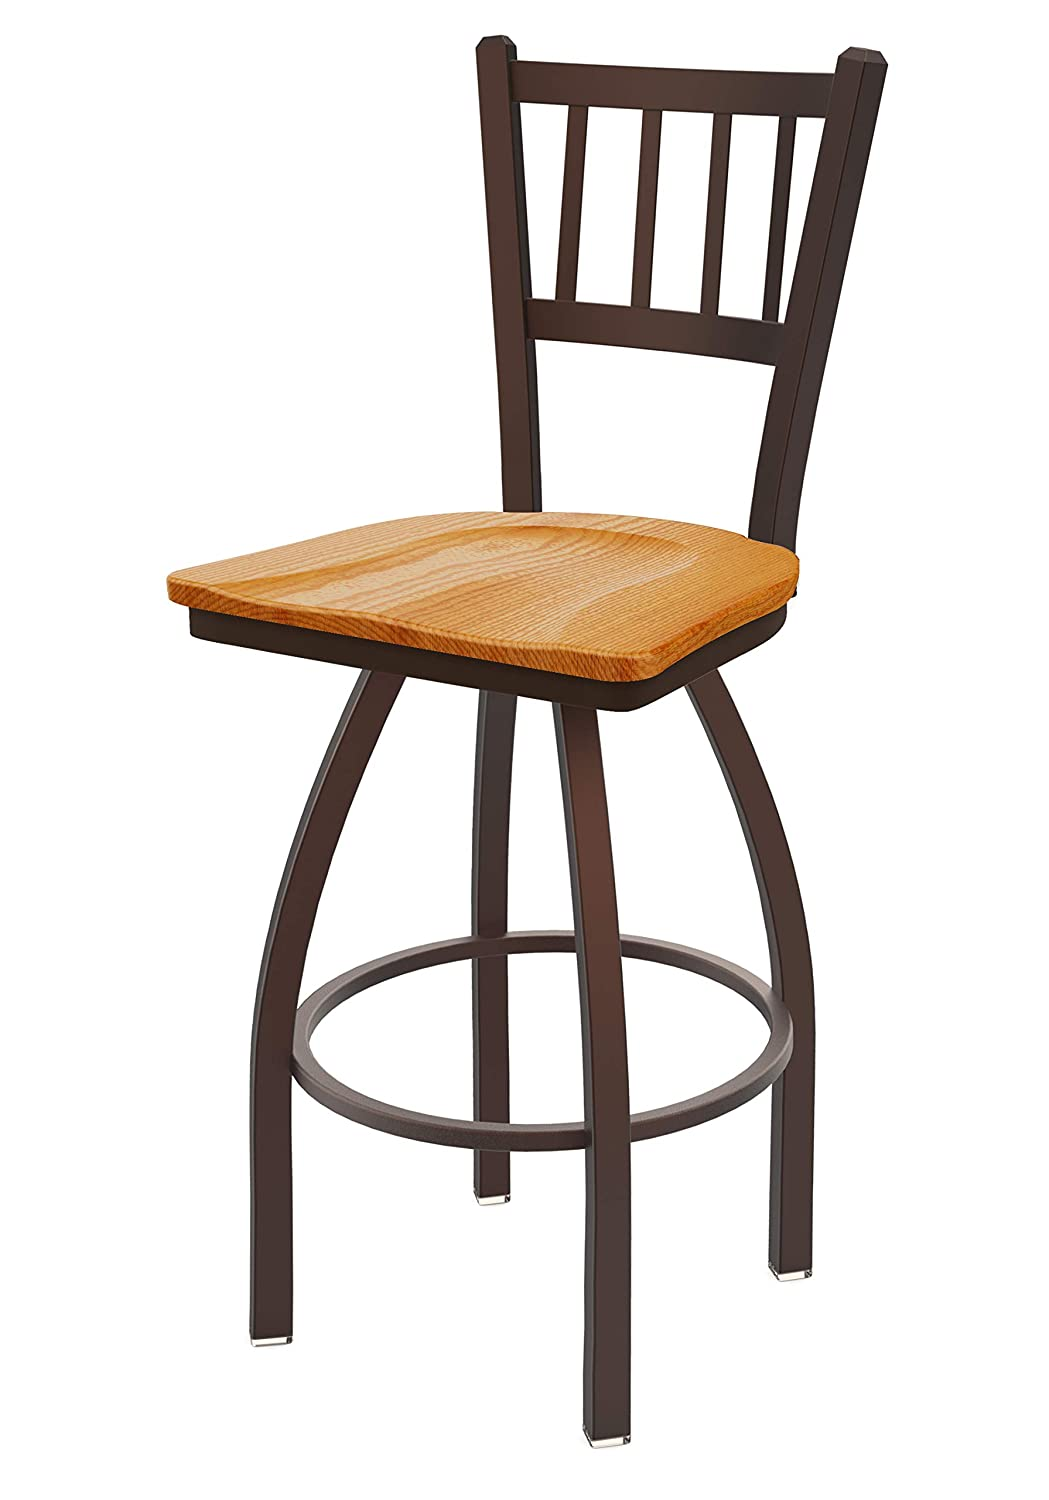 Holland Bar Stool Co. 81025BZMedOak 810 Contessa Counter Stool, 25 Seat Height, Medium Oak